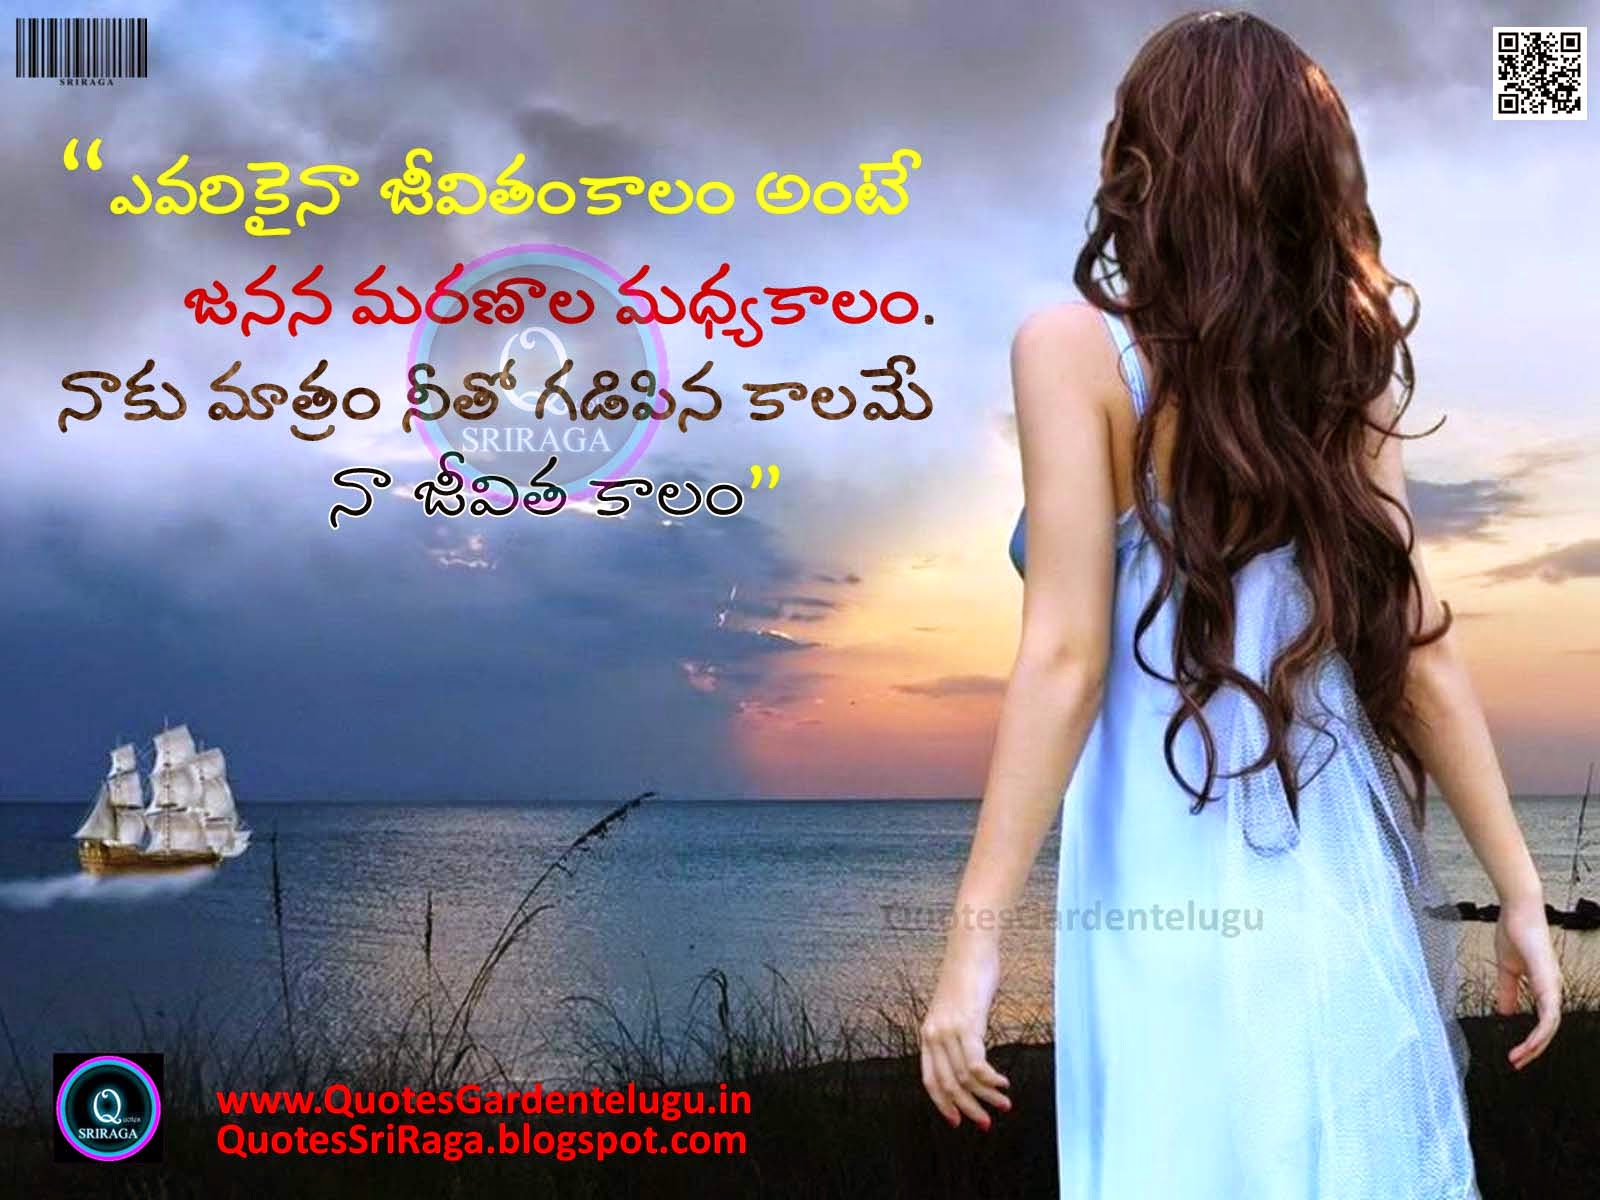 Sad Love Quotes For Him From The Heart In Telugu : Heart Touching love quotes in telugu QUOTES GARDEN TELUGU Telugu ...